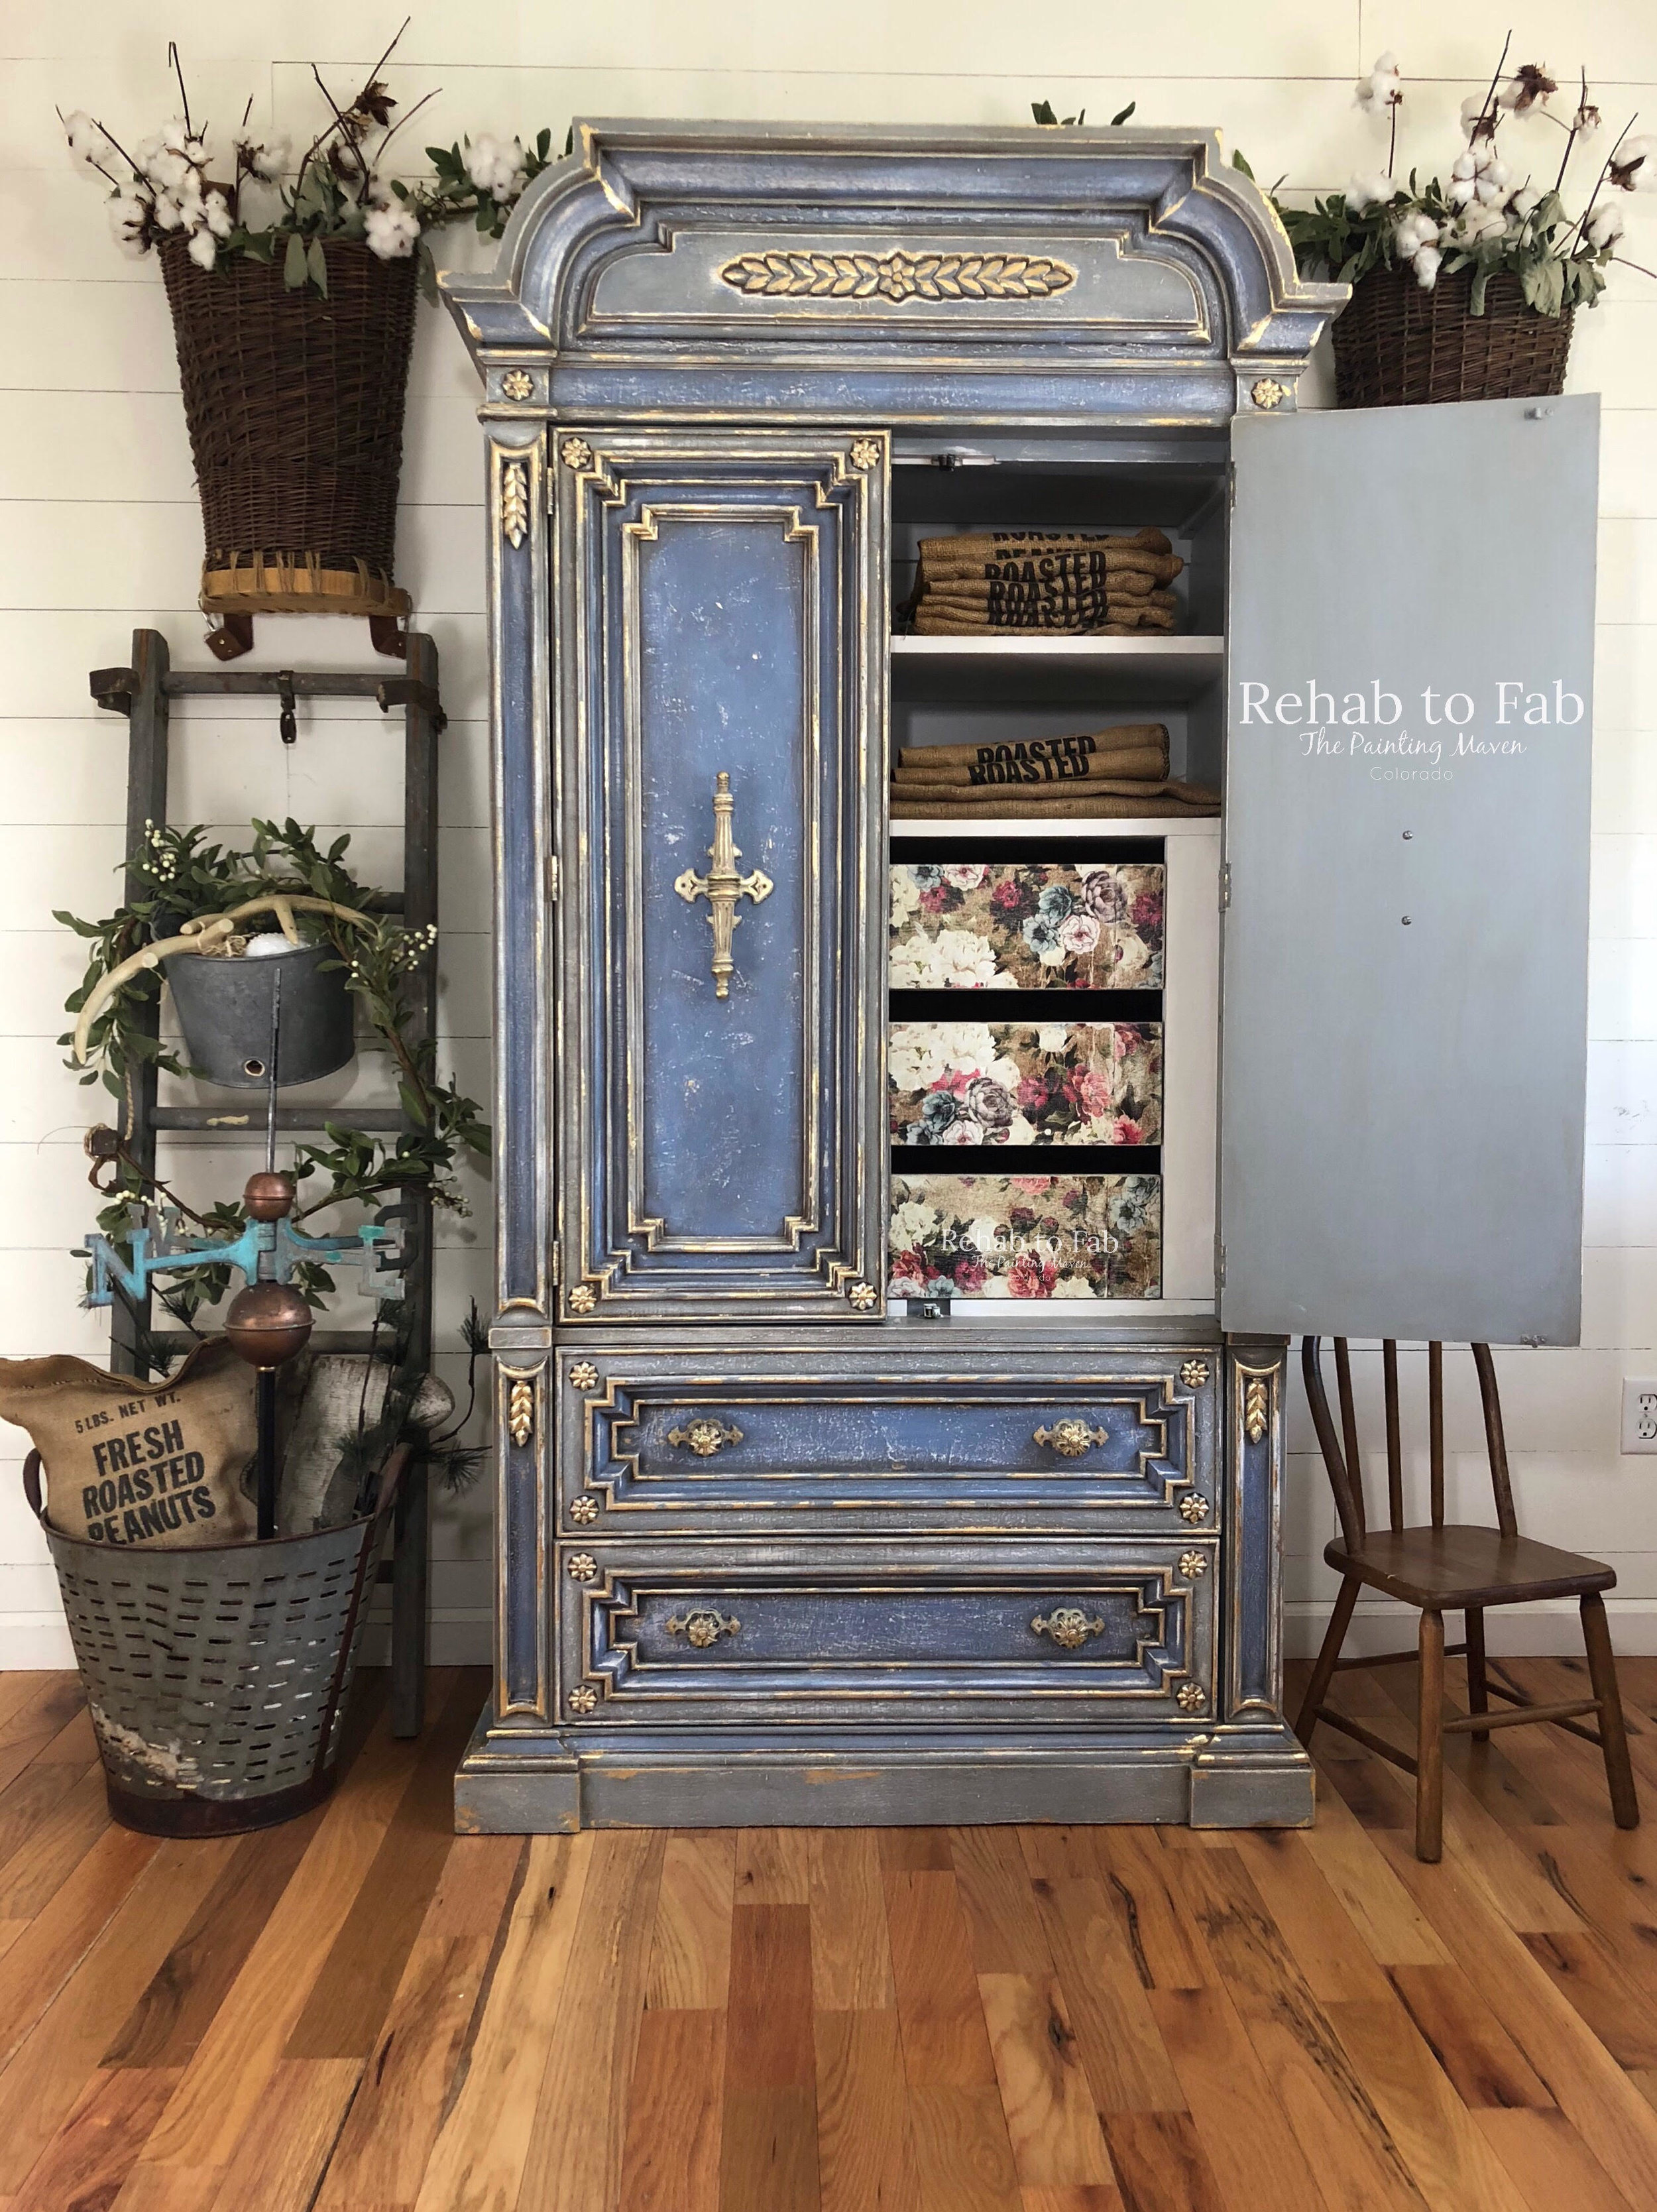 Isn't this a beauty? Stephanie of Rehab to Fab put hours of work into rehabbing this vintage wardrobe and it shows! We just released a collection of new [re]design transfers and Stephanie added one to this gorgeous piece....